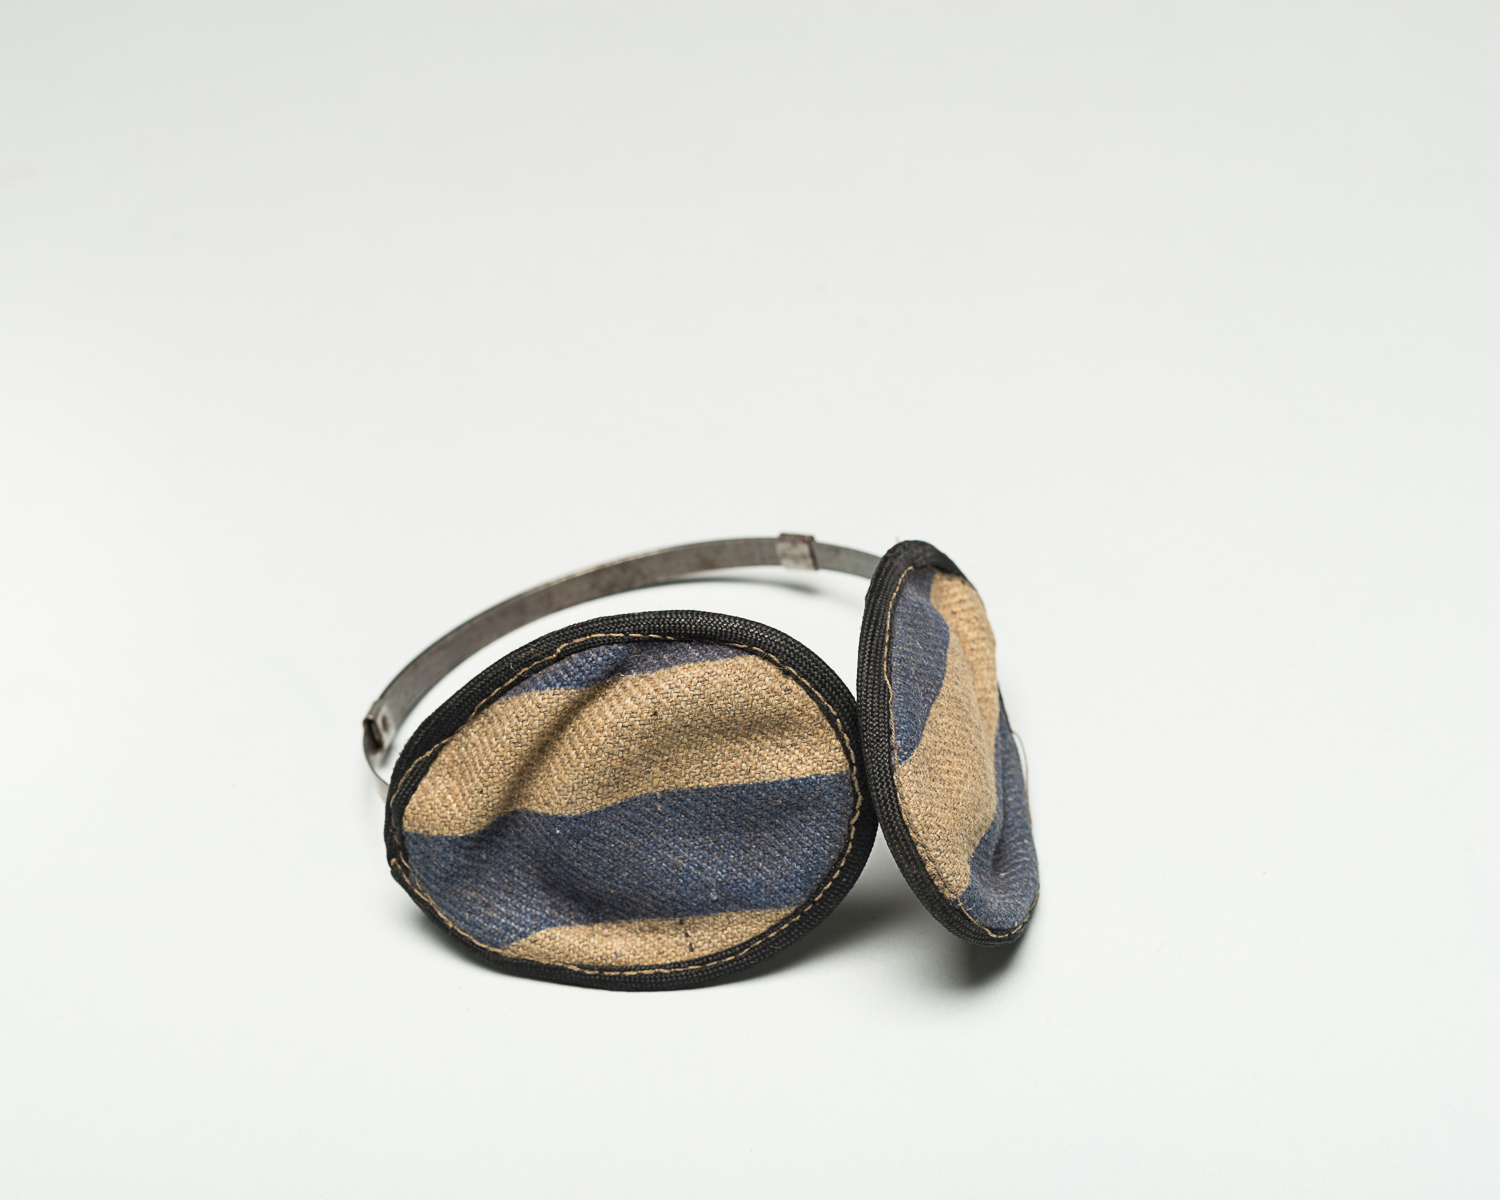 Earmuffs worn by Israel Viezel as protection from the elements when he was working in forced labour camps. (Photo: Peter Berra)